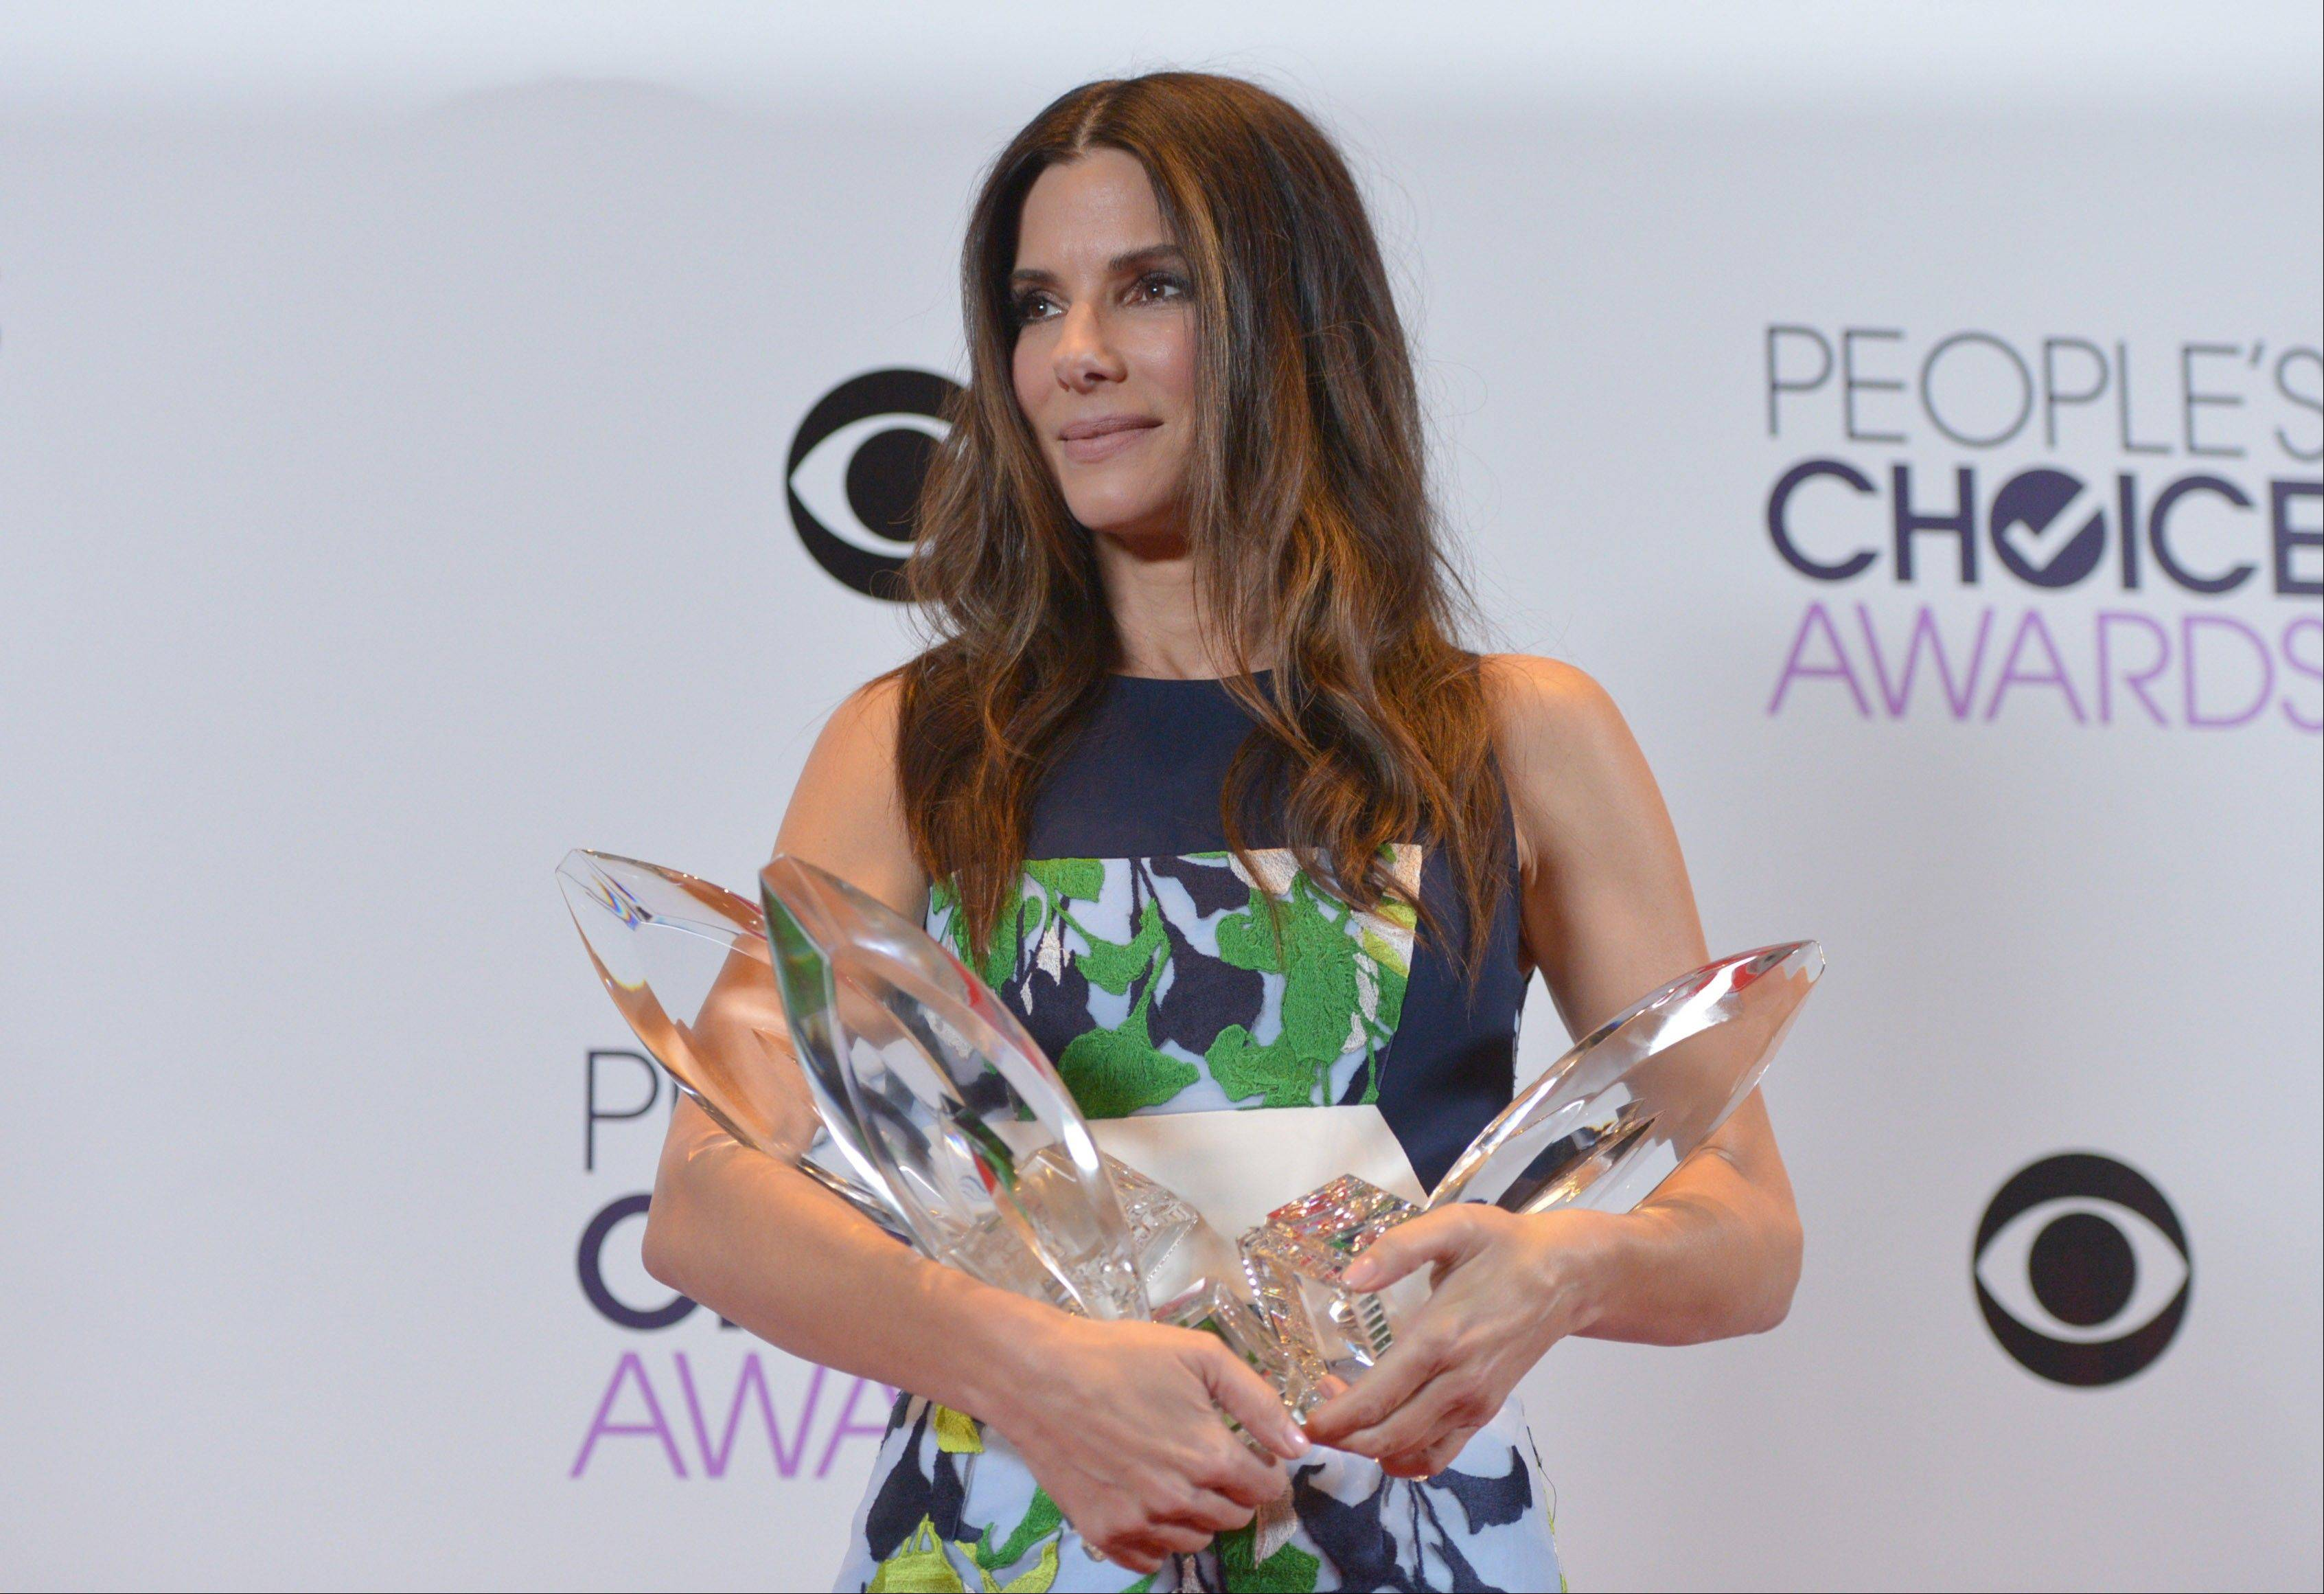 Associated Press Sandra Bullock won Favorite Movie Actress, Favorite Dramatic Movie Actress and Favorite Comedic Movie Actress Wednesday at the 40th annual People's Choice Awards iin Los Angeles.